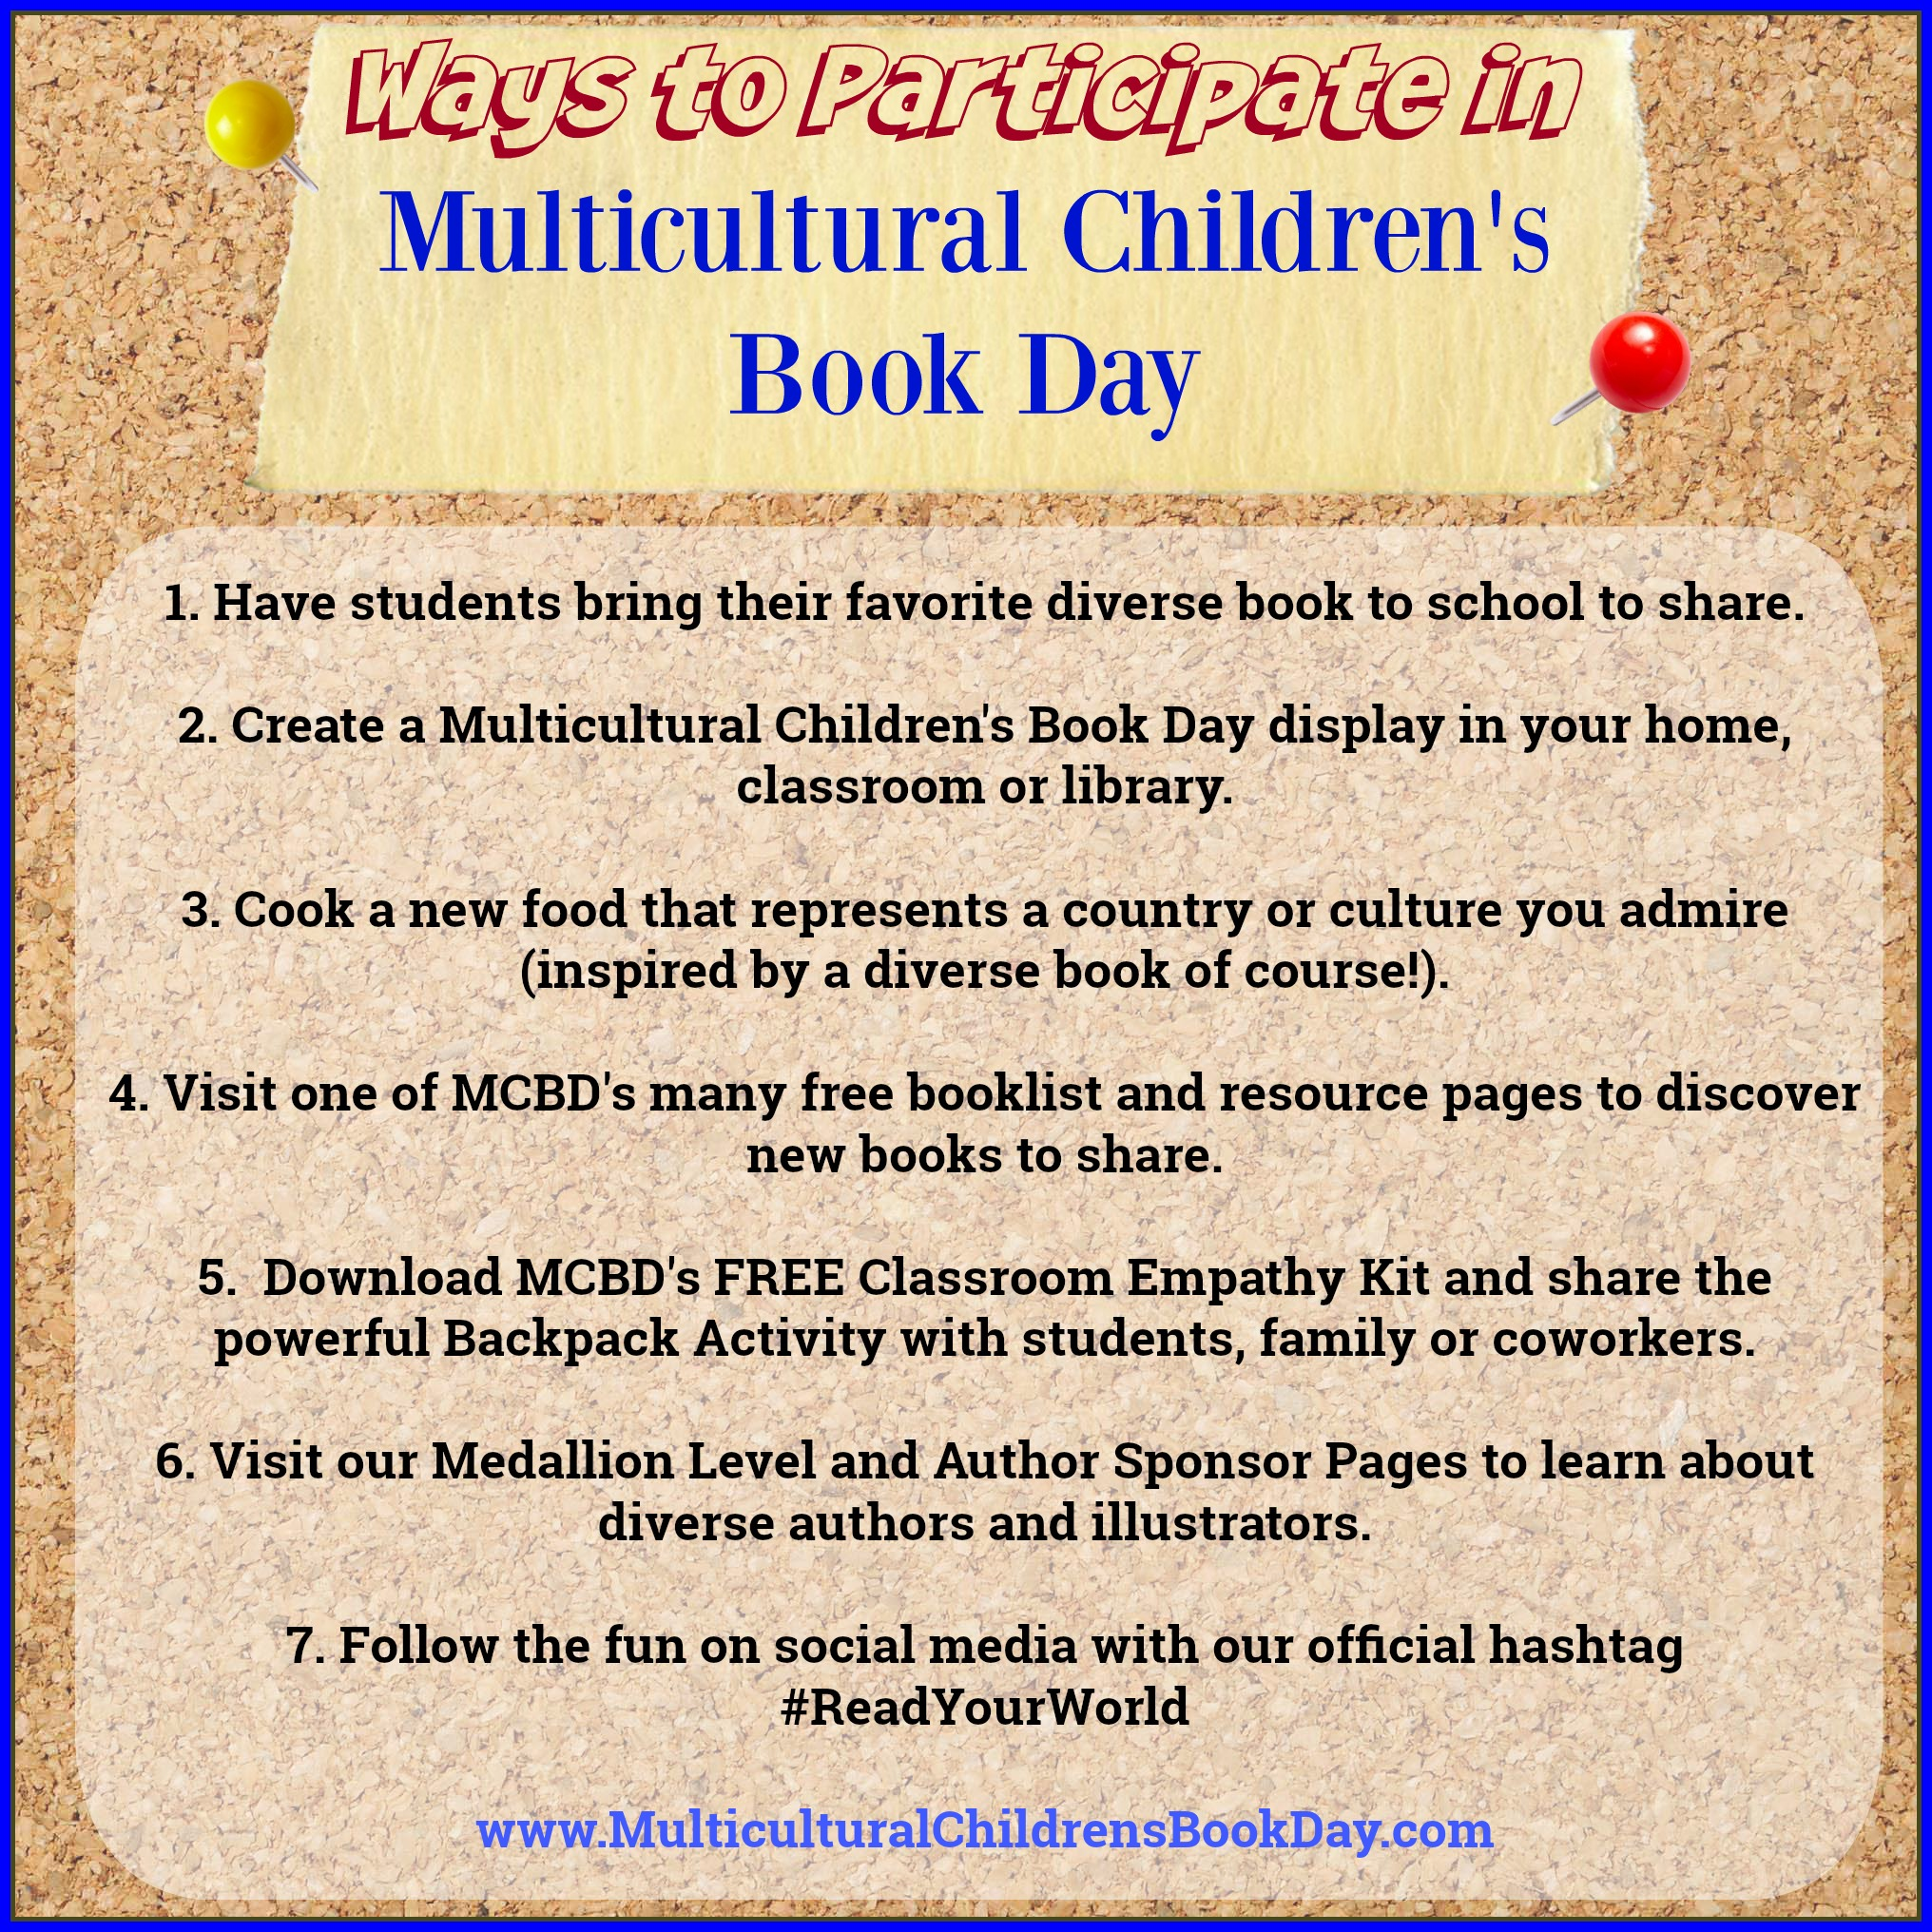 Ways to Participate in Multicultural Children's Book Day